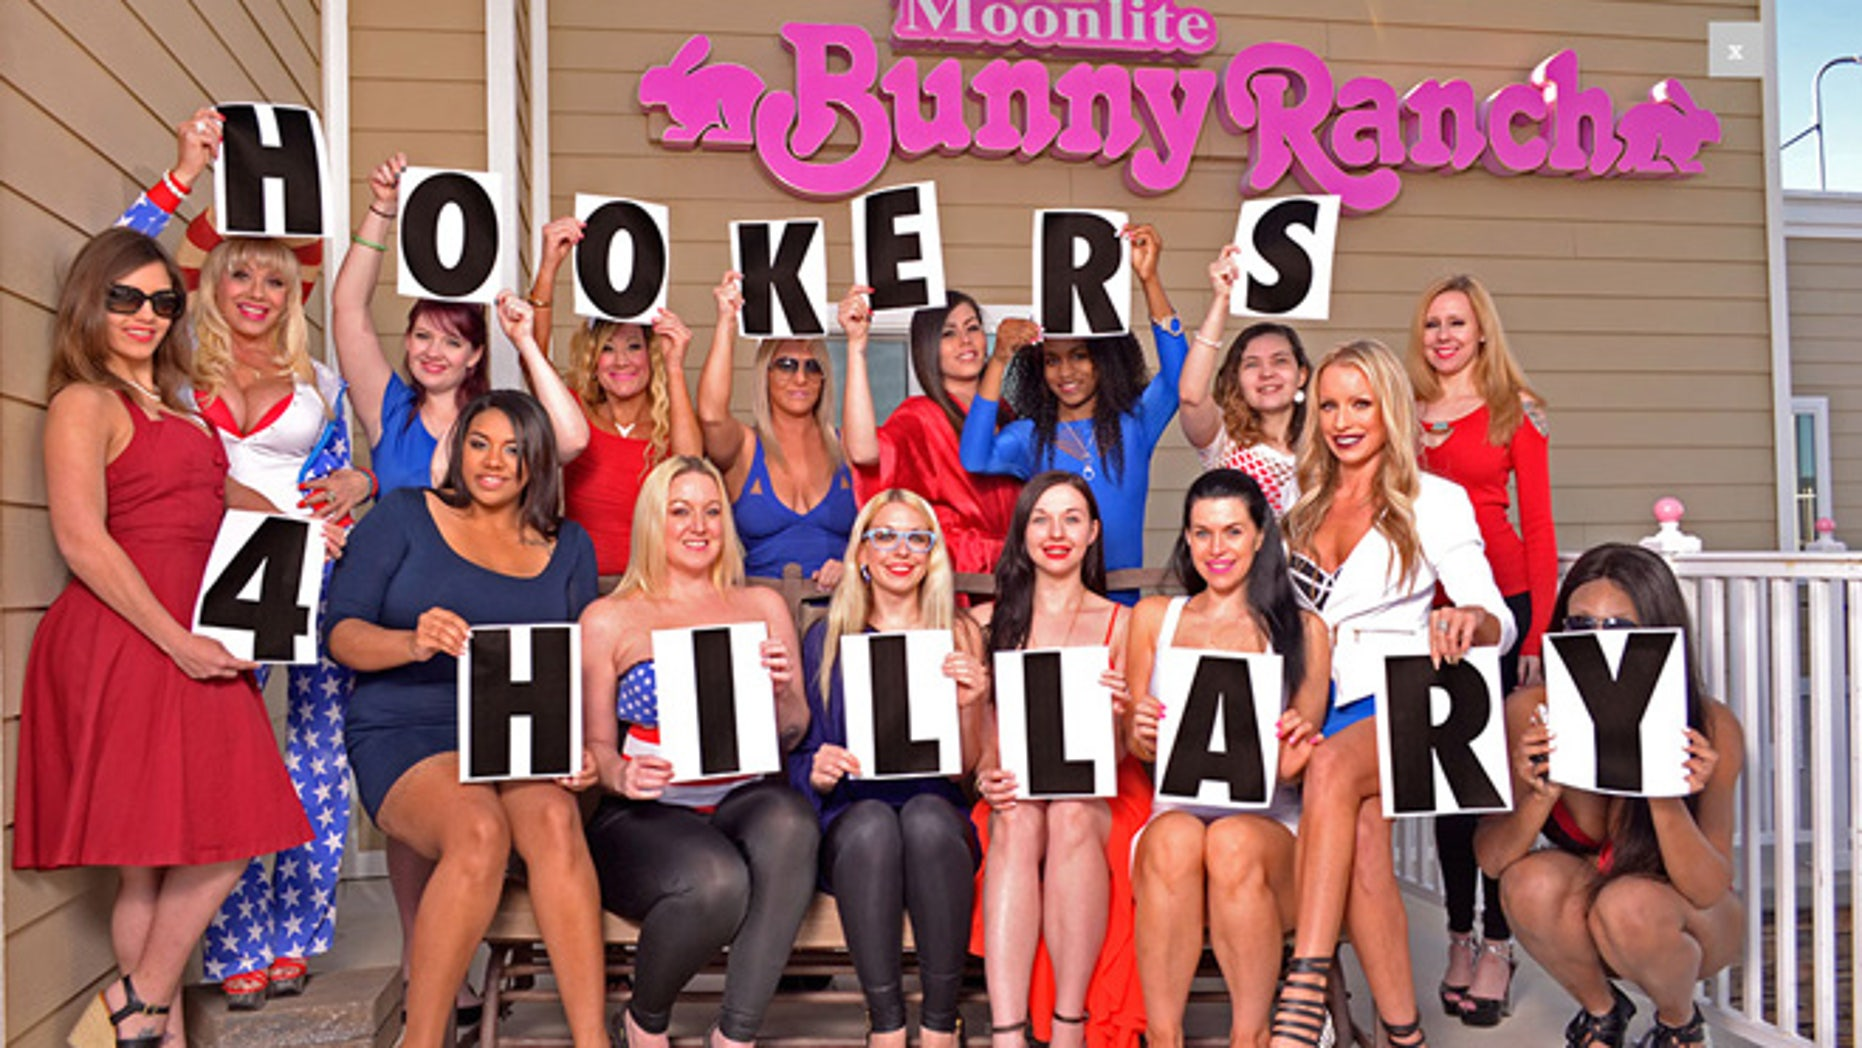 Shown here are Hillary Clinton supporters at Moonlite Bunny Ranch, in Carson City, Nev. (Photo Courtesy Of www.BunnyRanch.com)